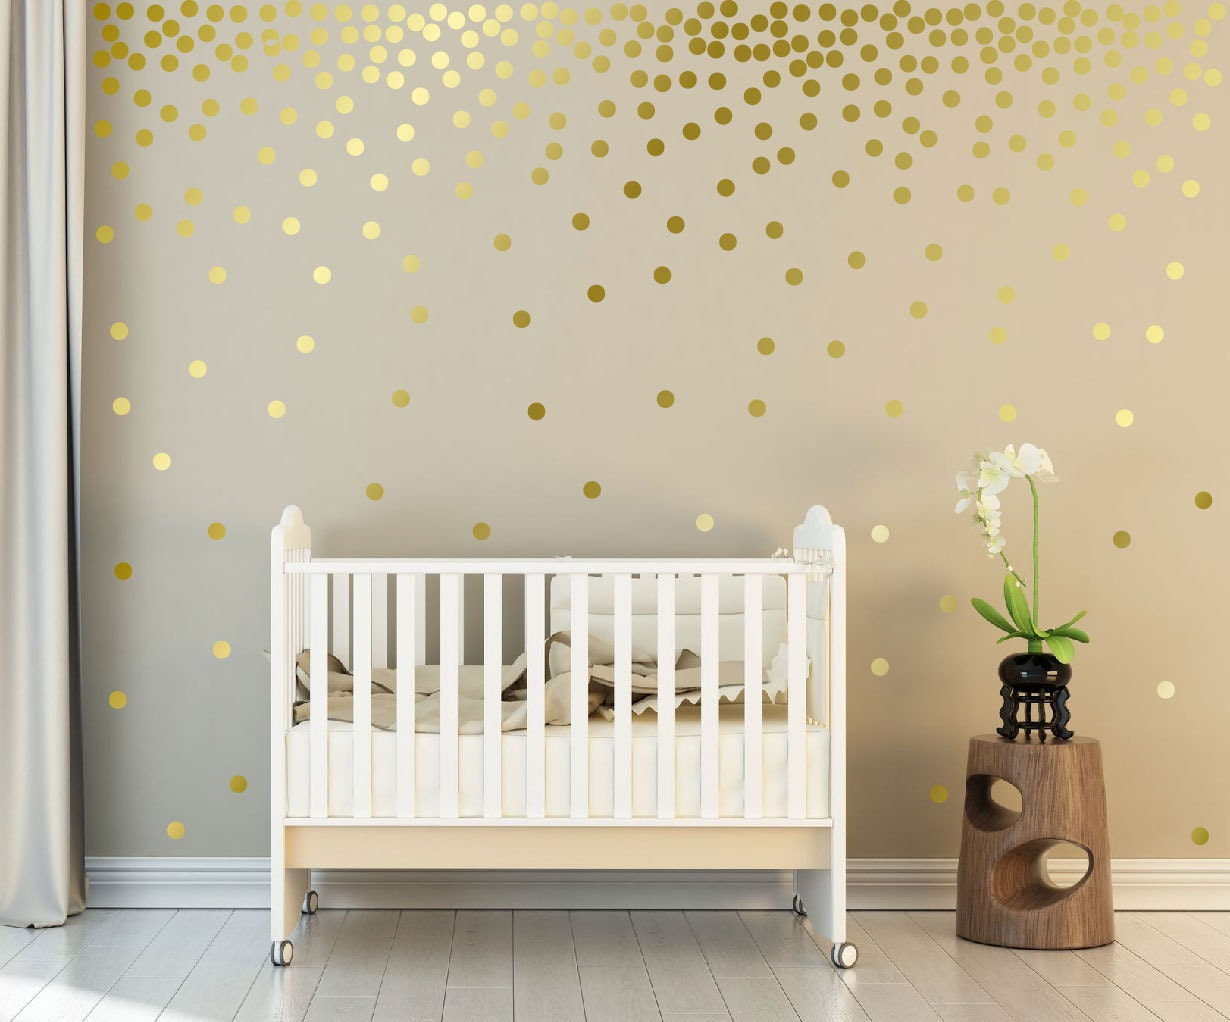 Metallic Gold Wall Decals Polka Dots Wall Decor - 1 Inch, 1.5,2 ...